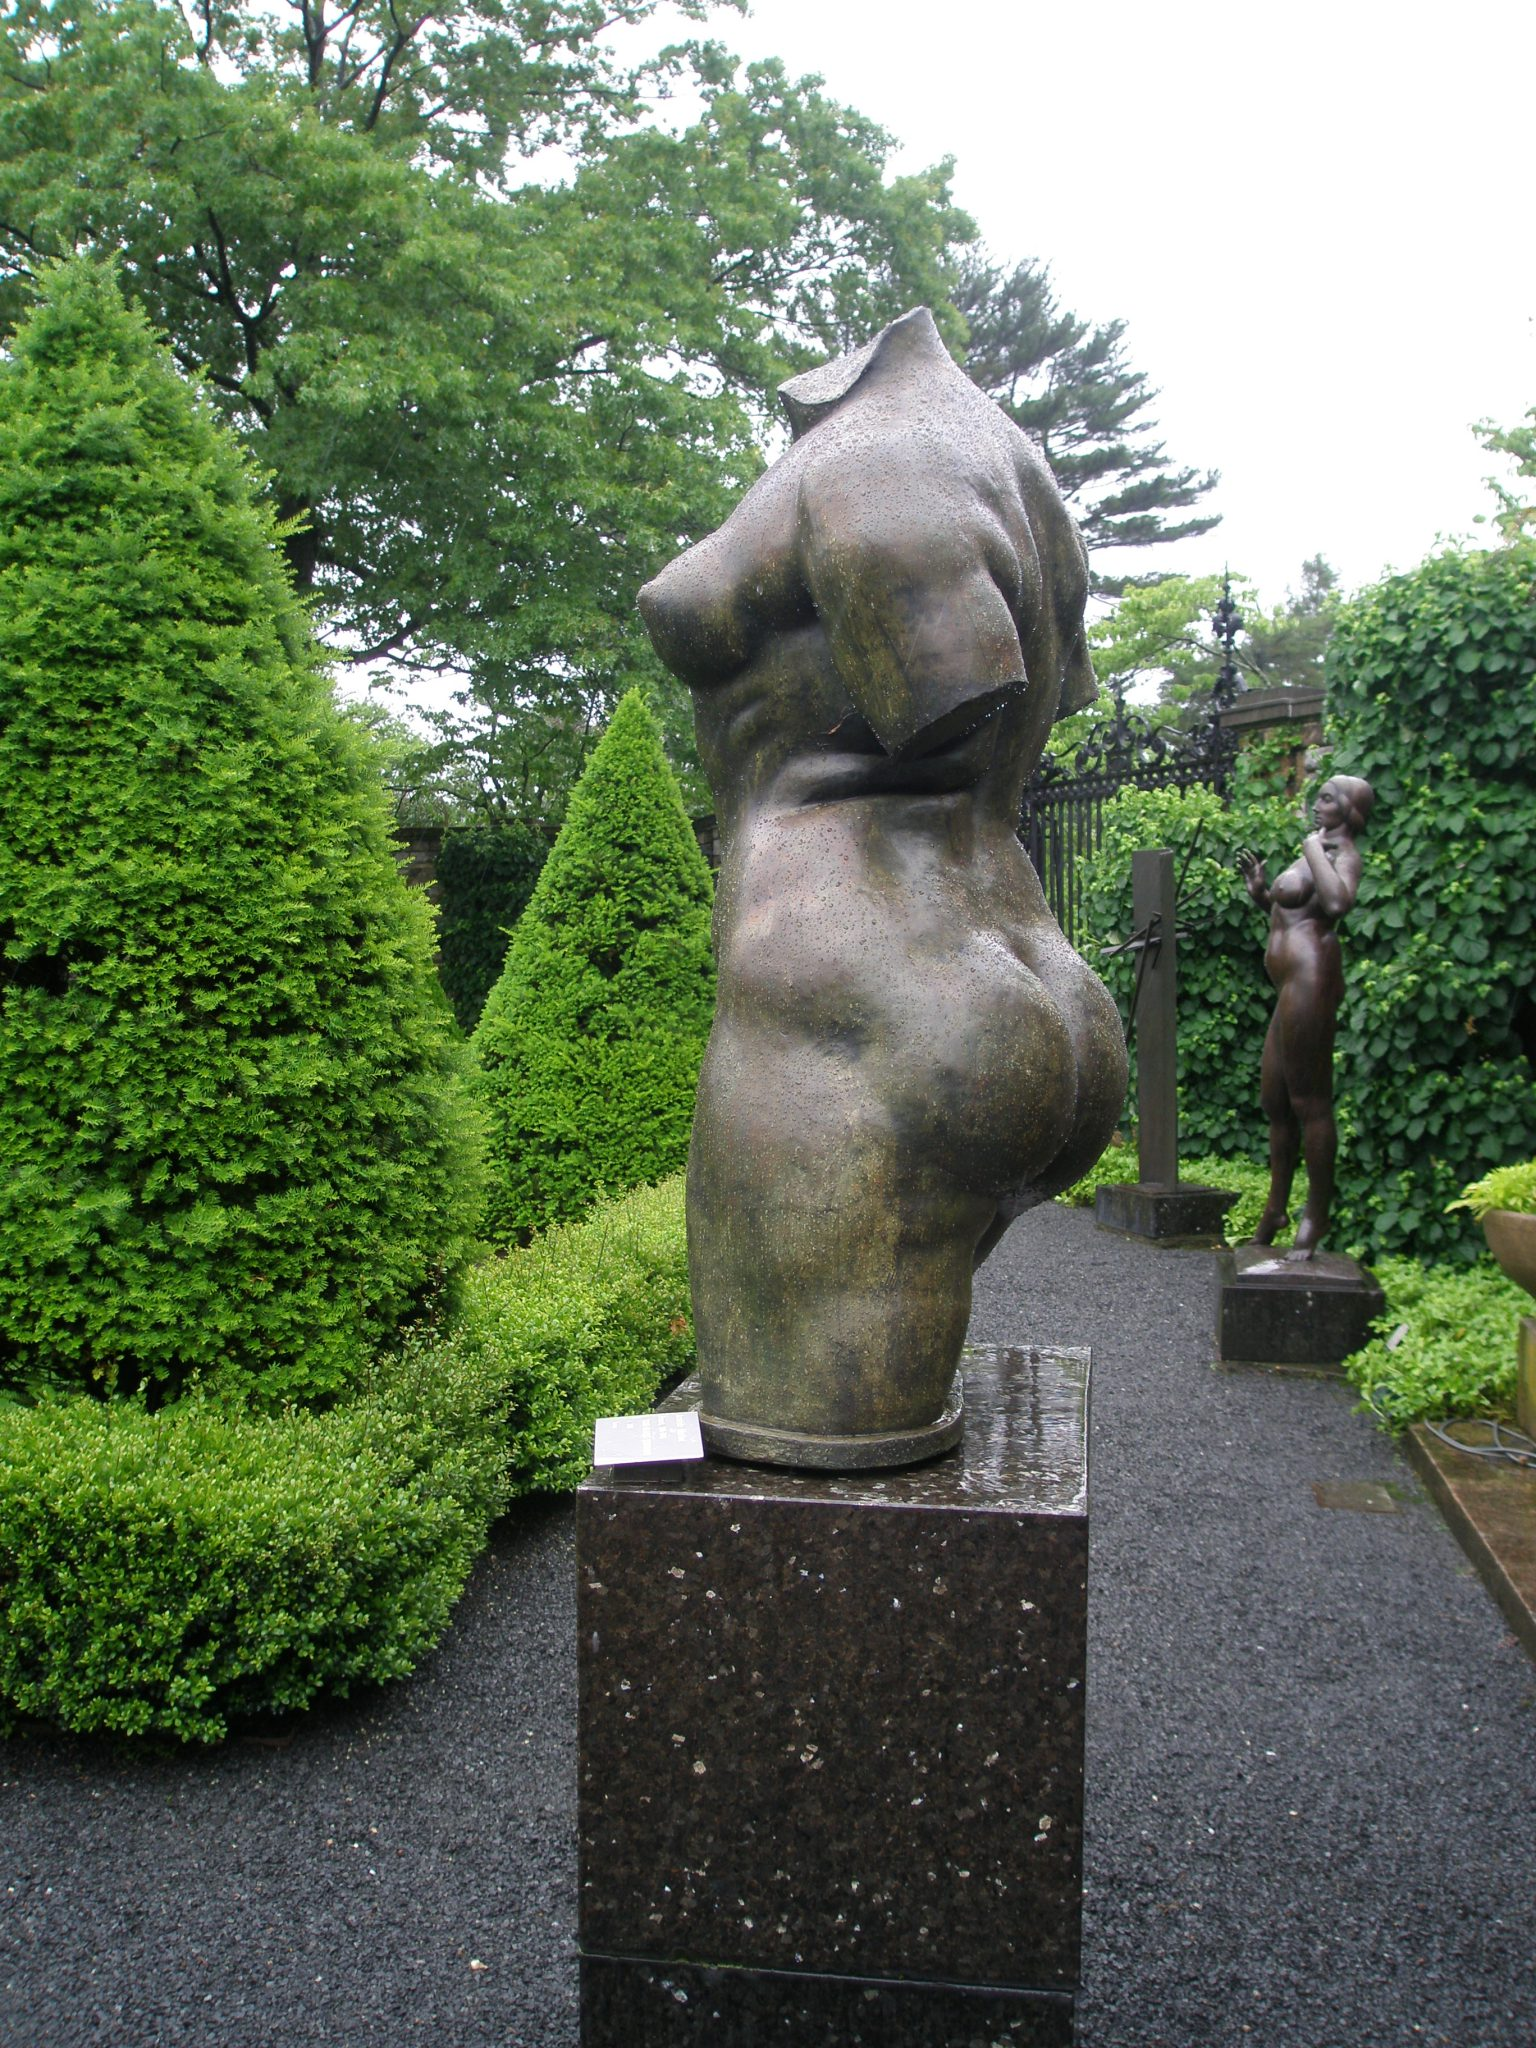 More statues adorn the Inner Garden